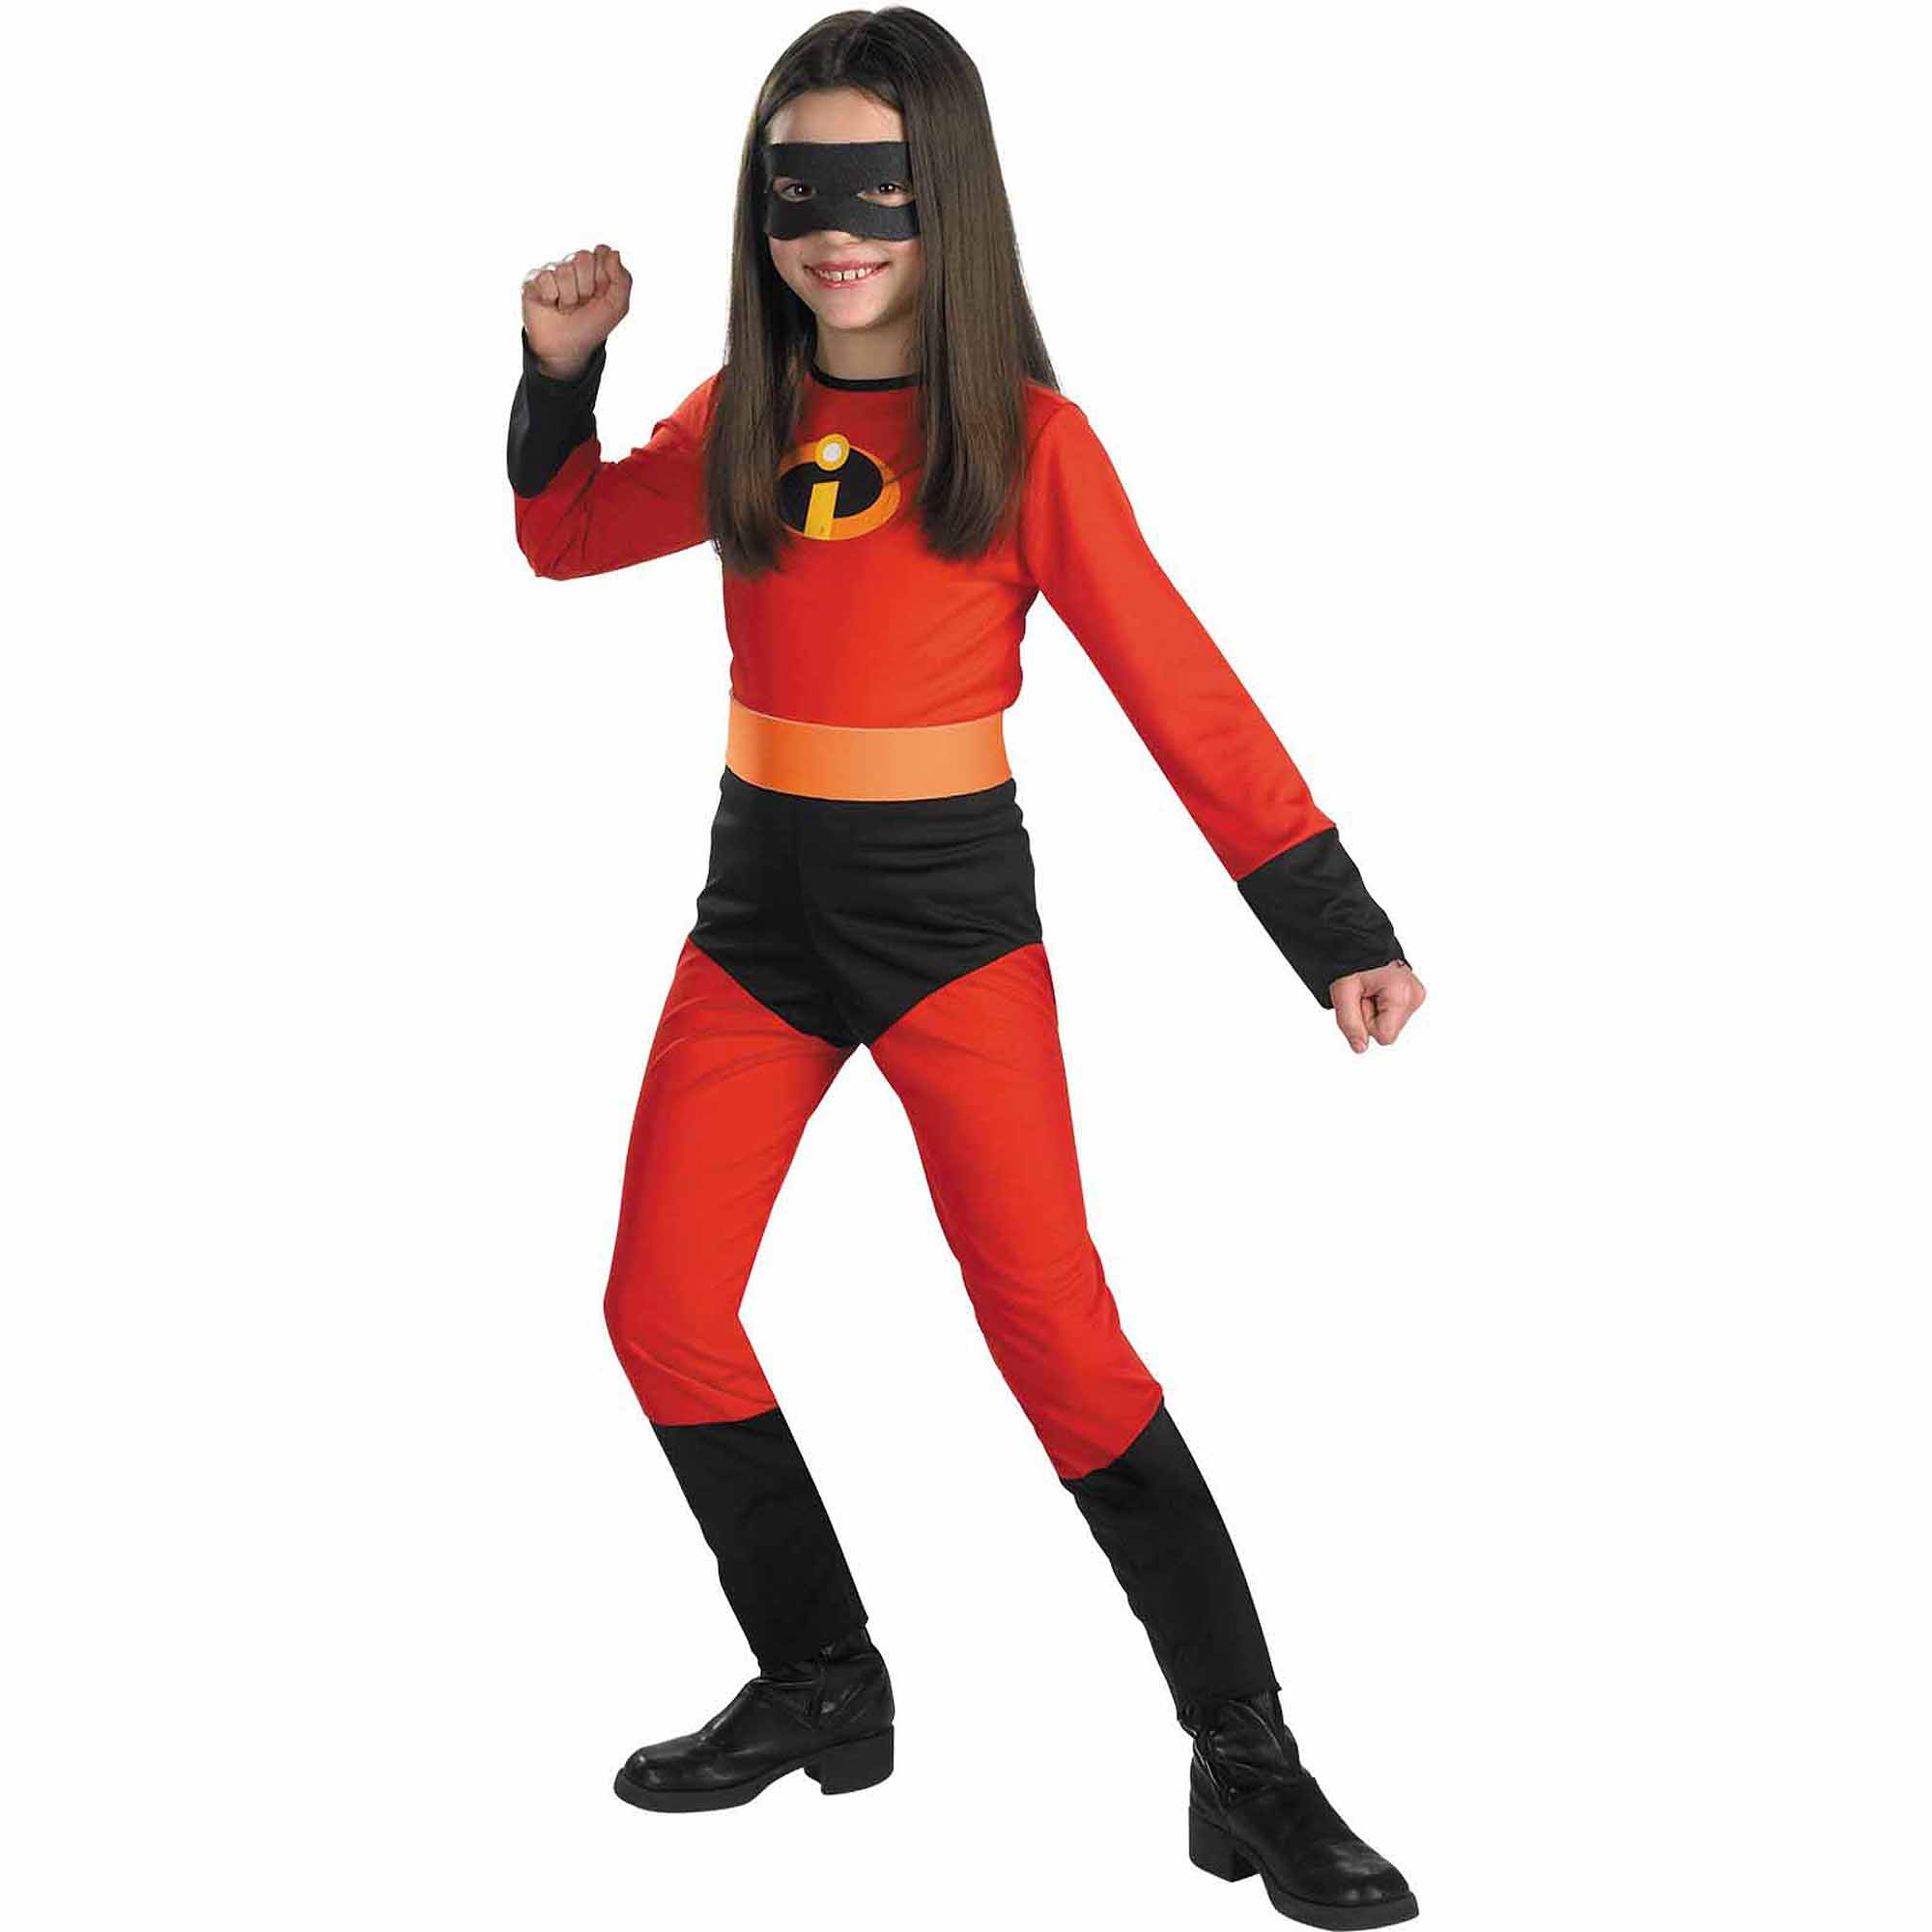 Incredibles Violet Child Halloween Costume, One Size, M (7-8)